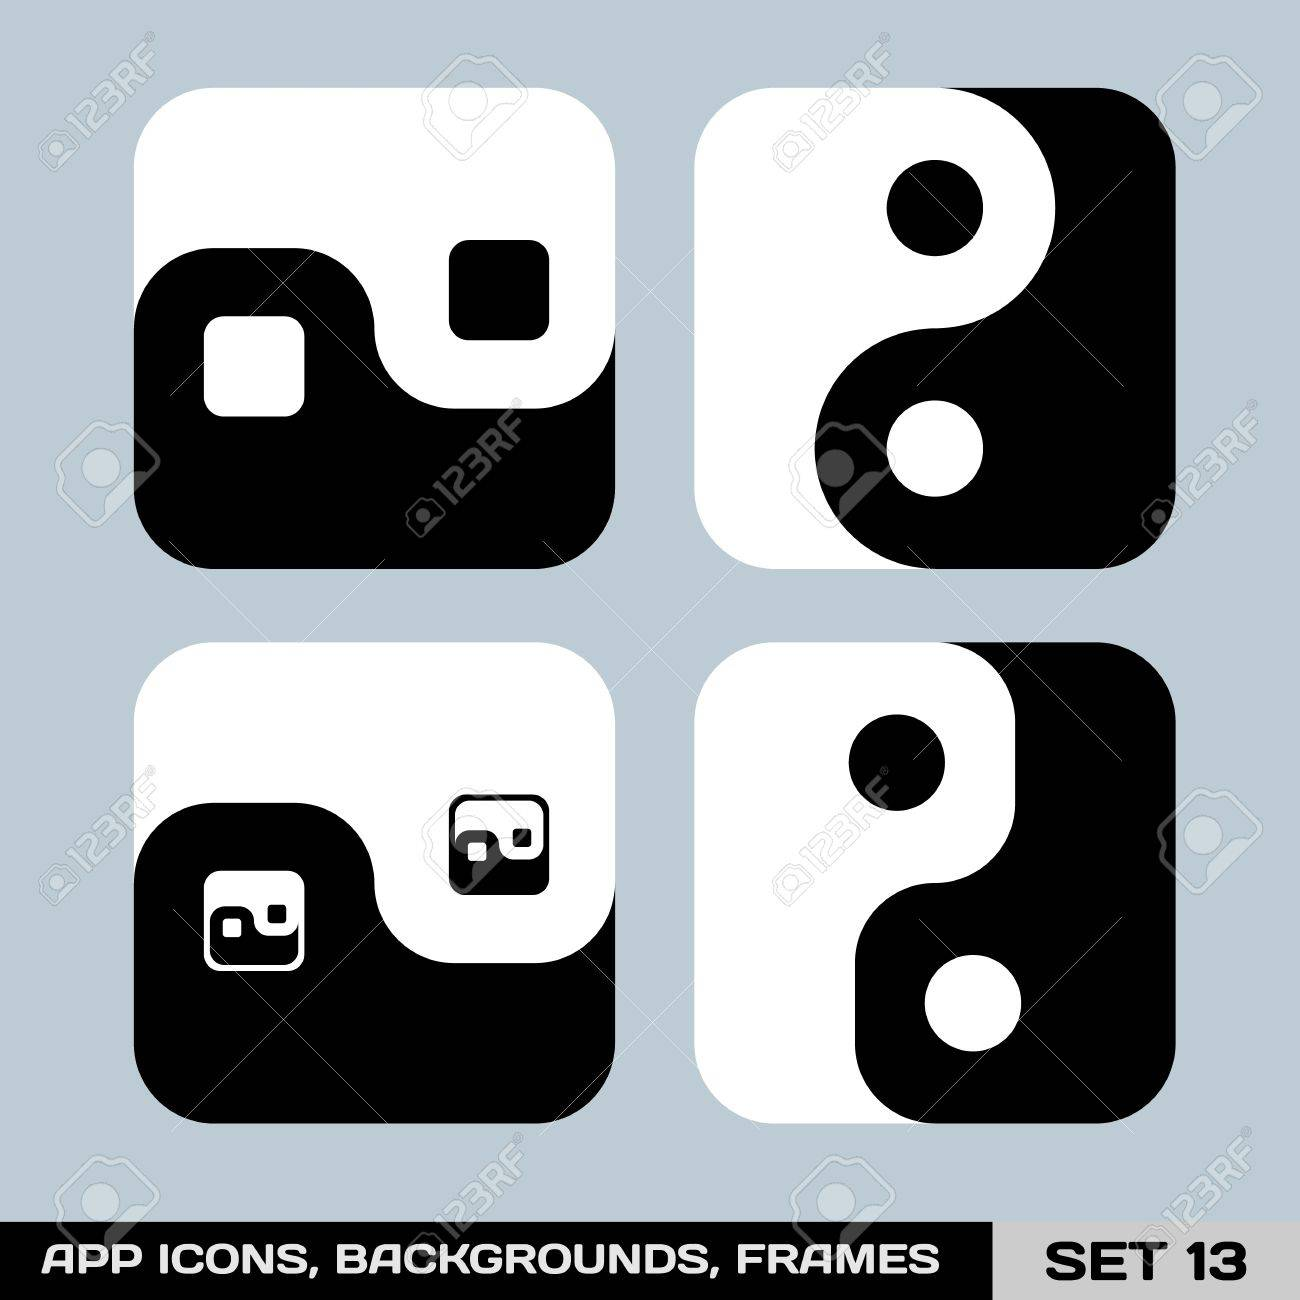 Set Of App Icon Backgrounds, Frames, Templates  Set Stock Vector - 19316355